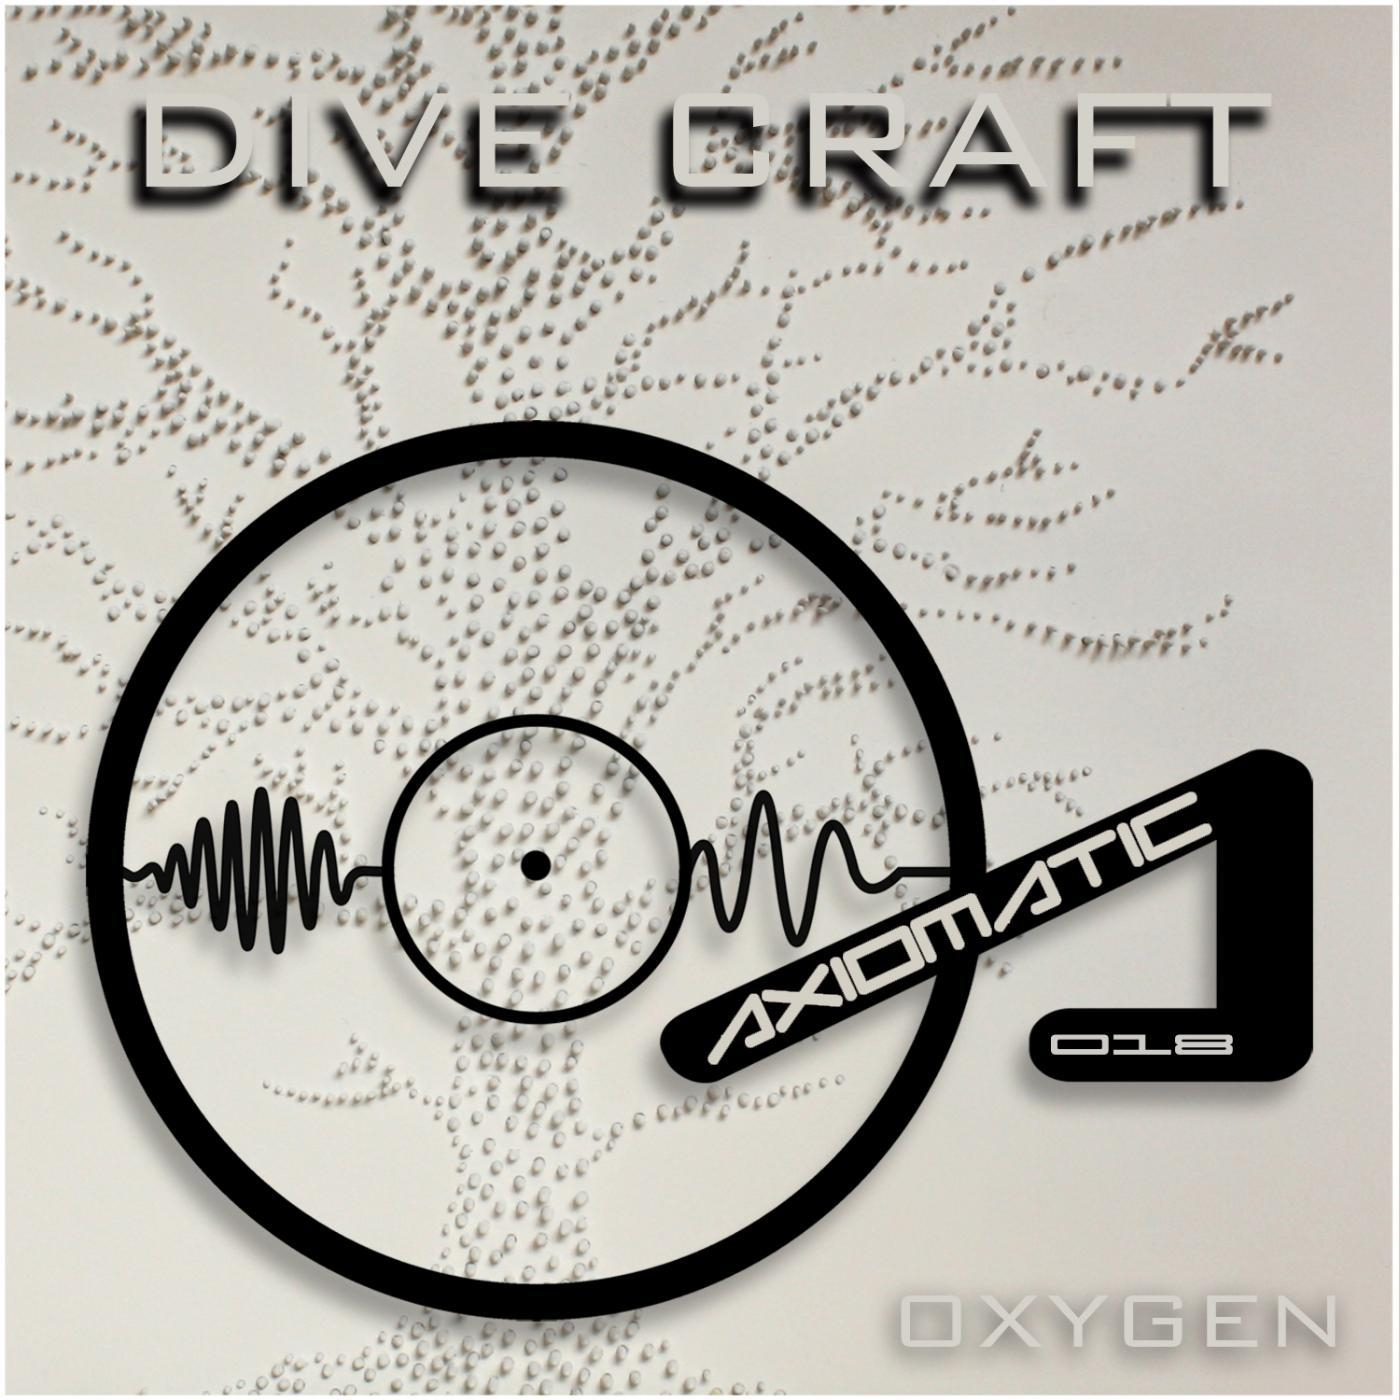 Dive Craft - Phased Reality (Original mix)